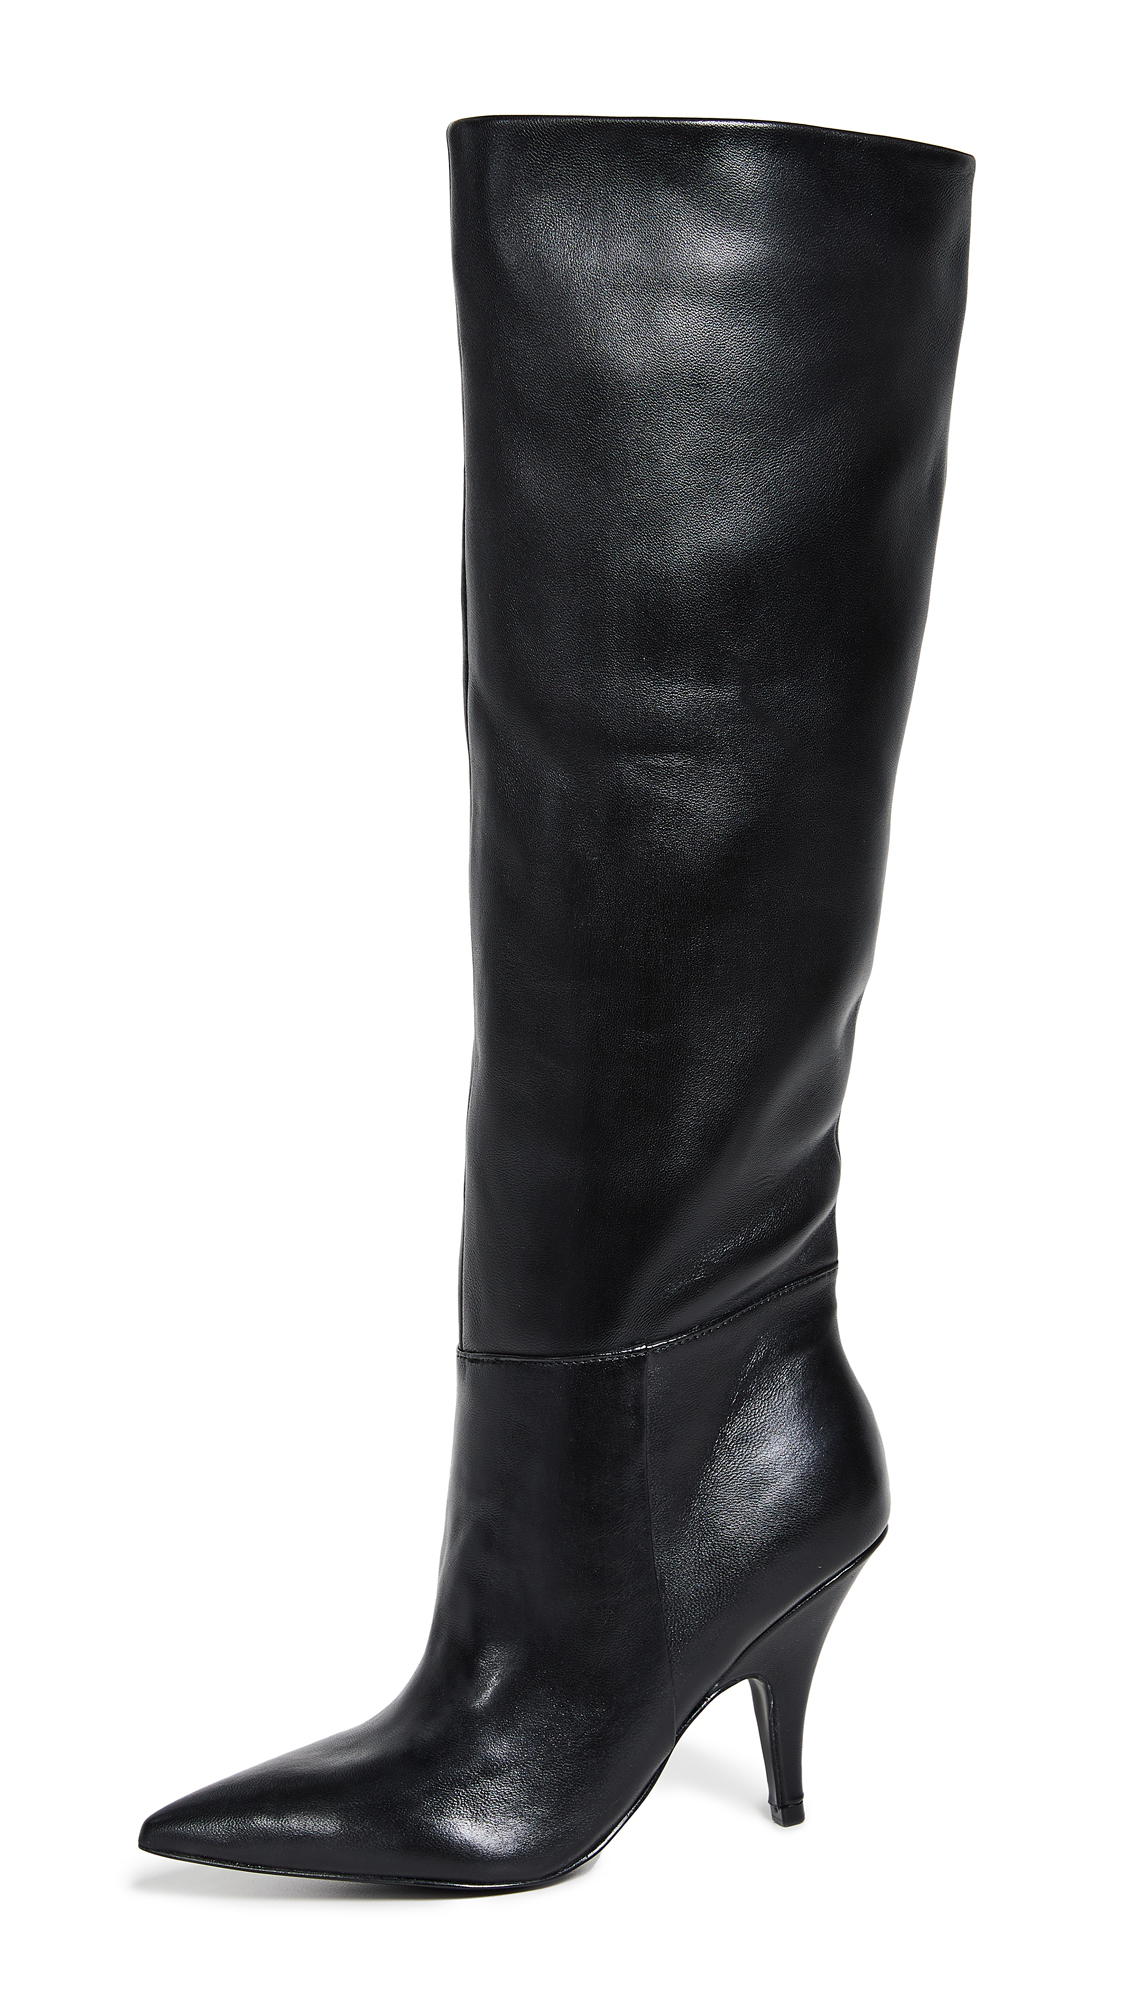 KENDALL + KYLIE Calla Point Toe Boots - Black